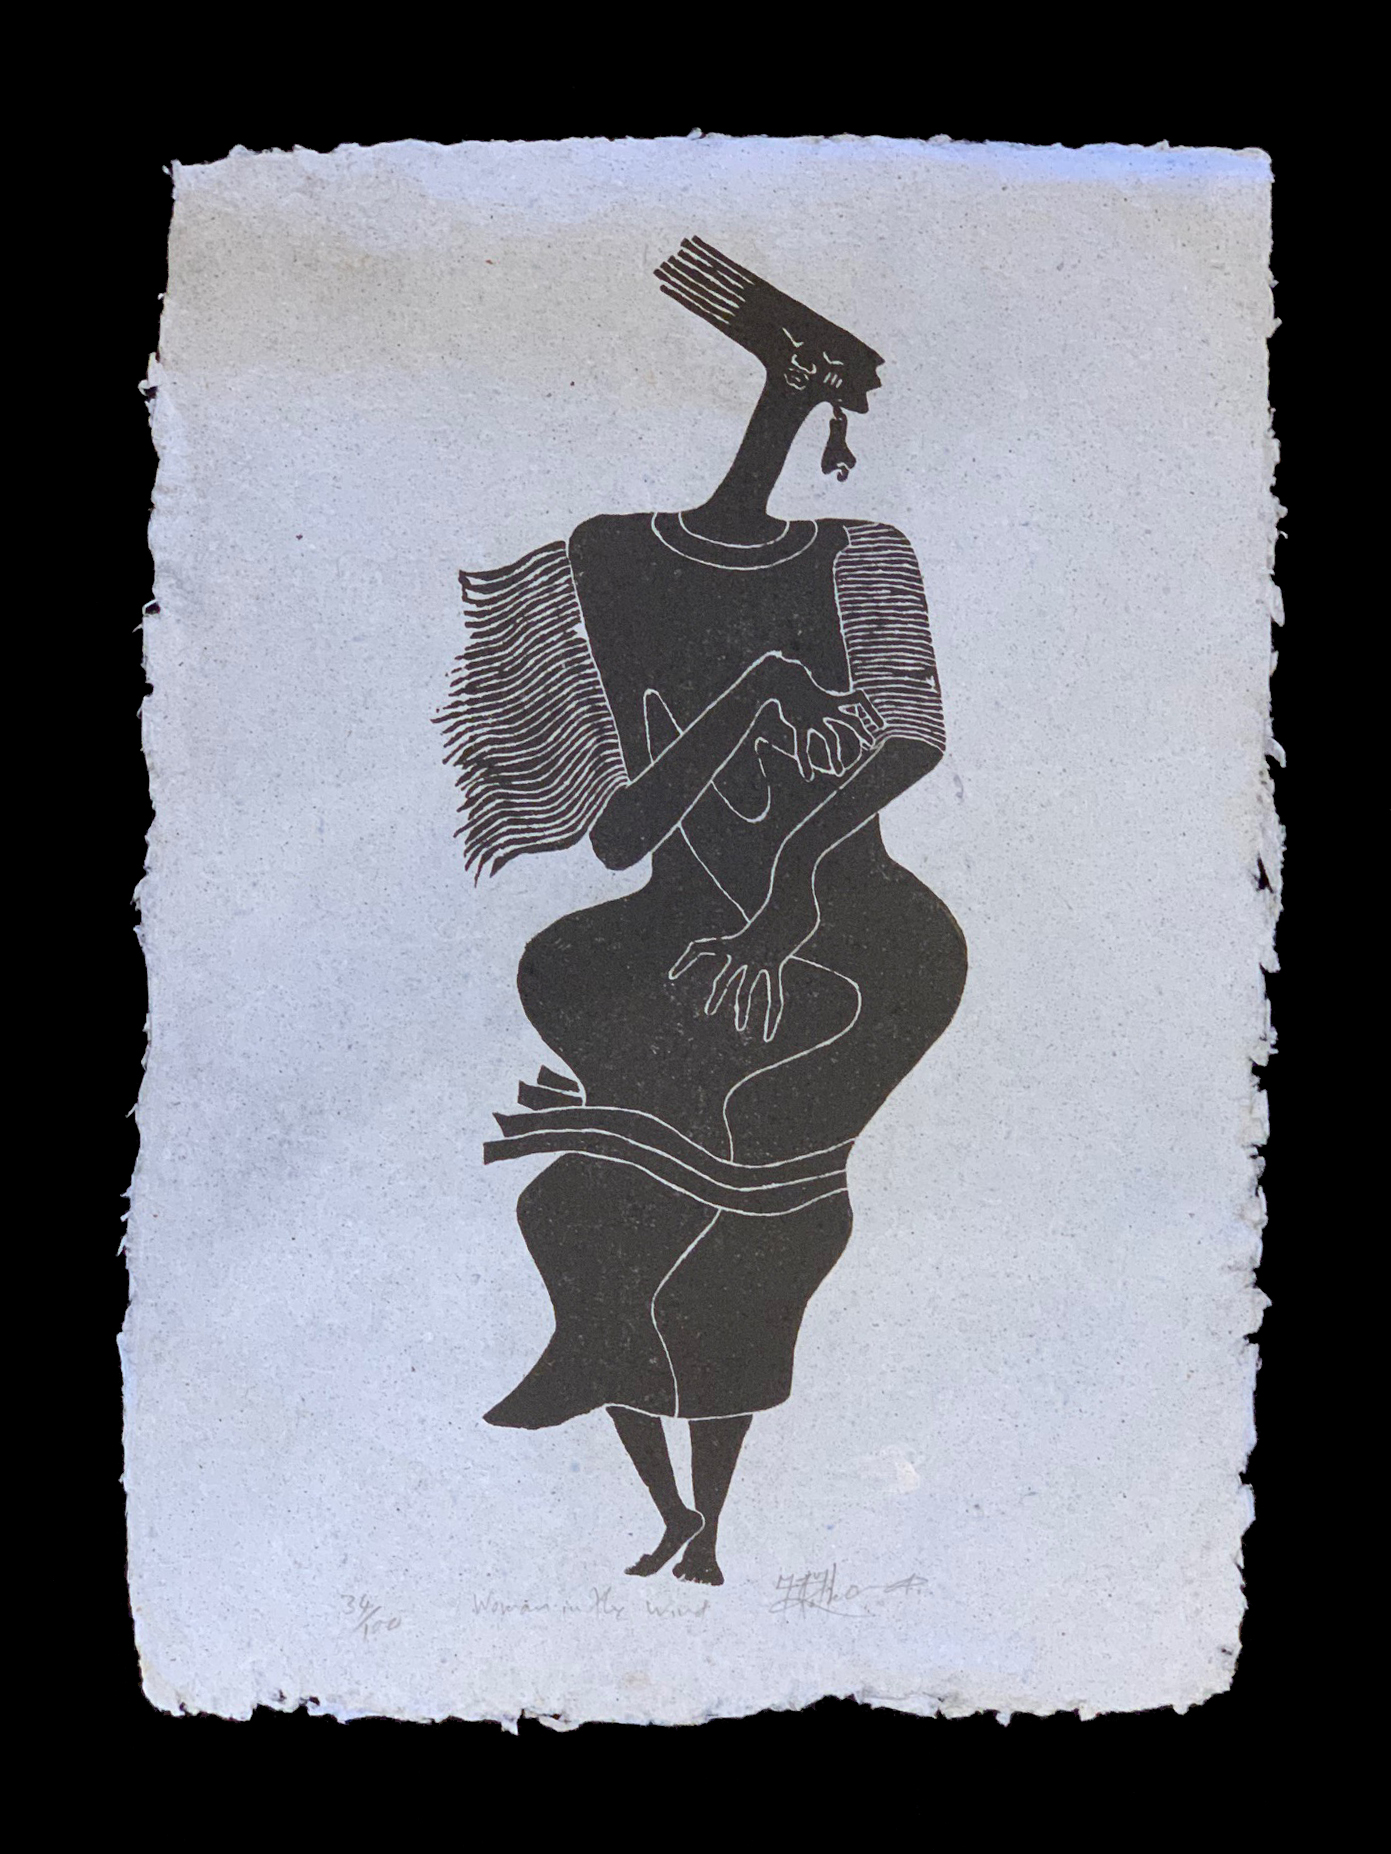 Woman In The Wind - An etched stone block print ( Signed limited edition # 34/100)by the late Anderson Mukomberanwa